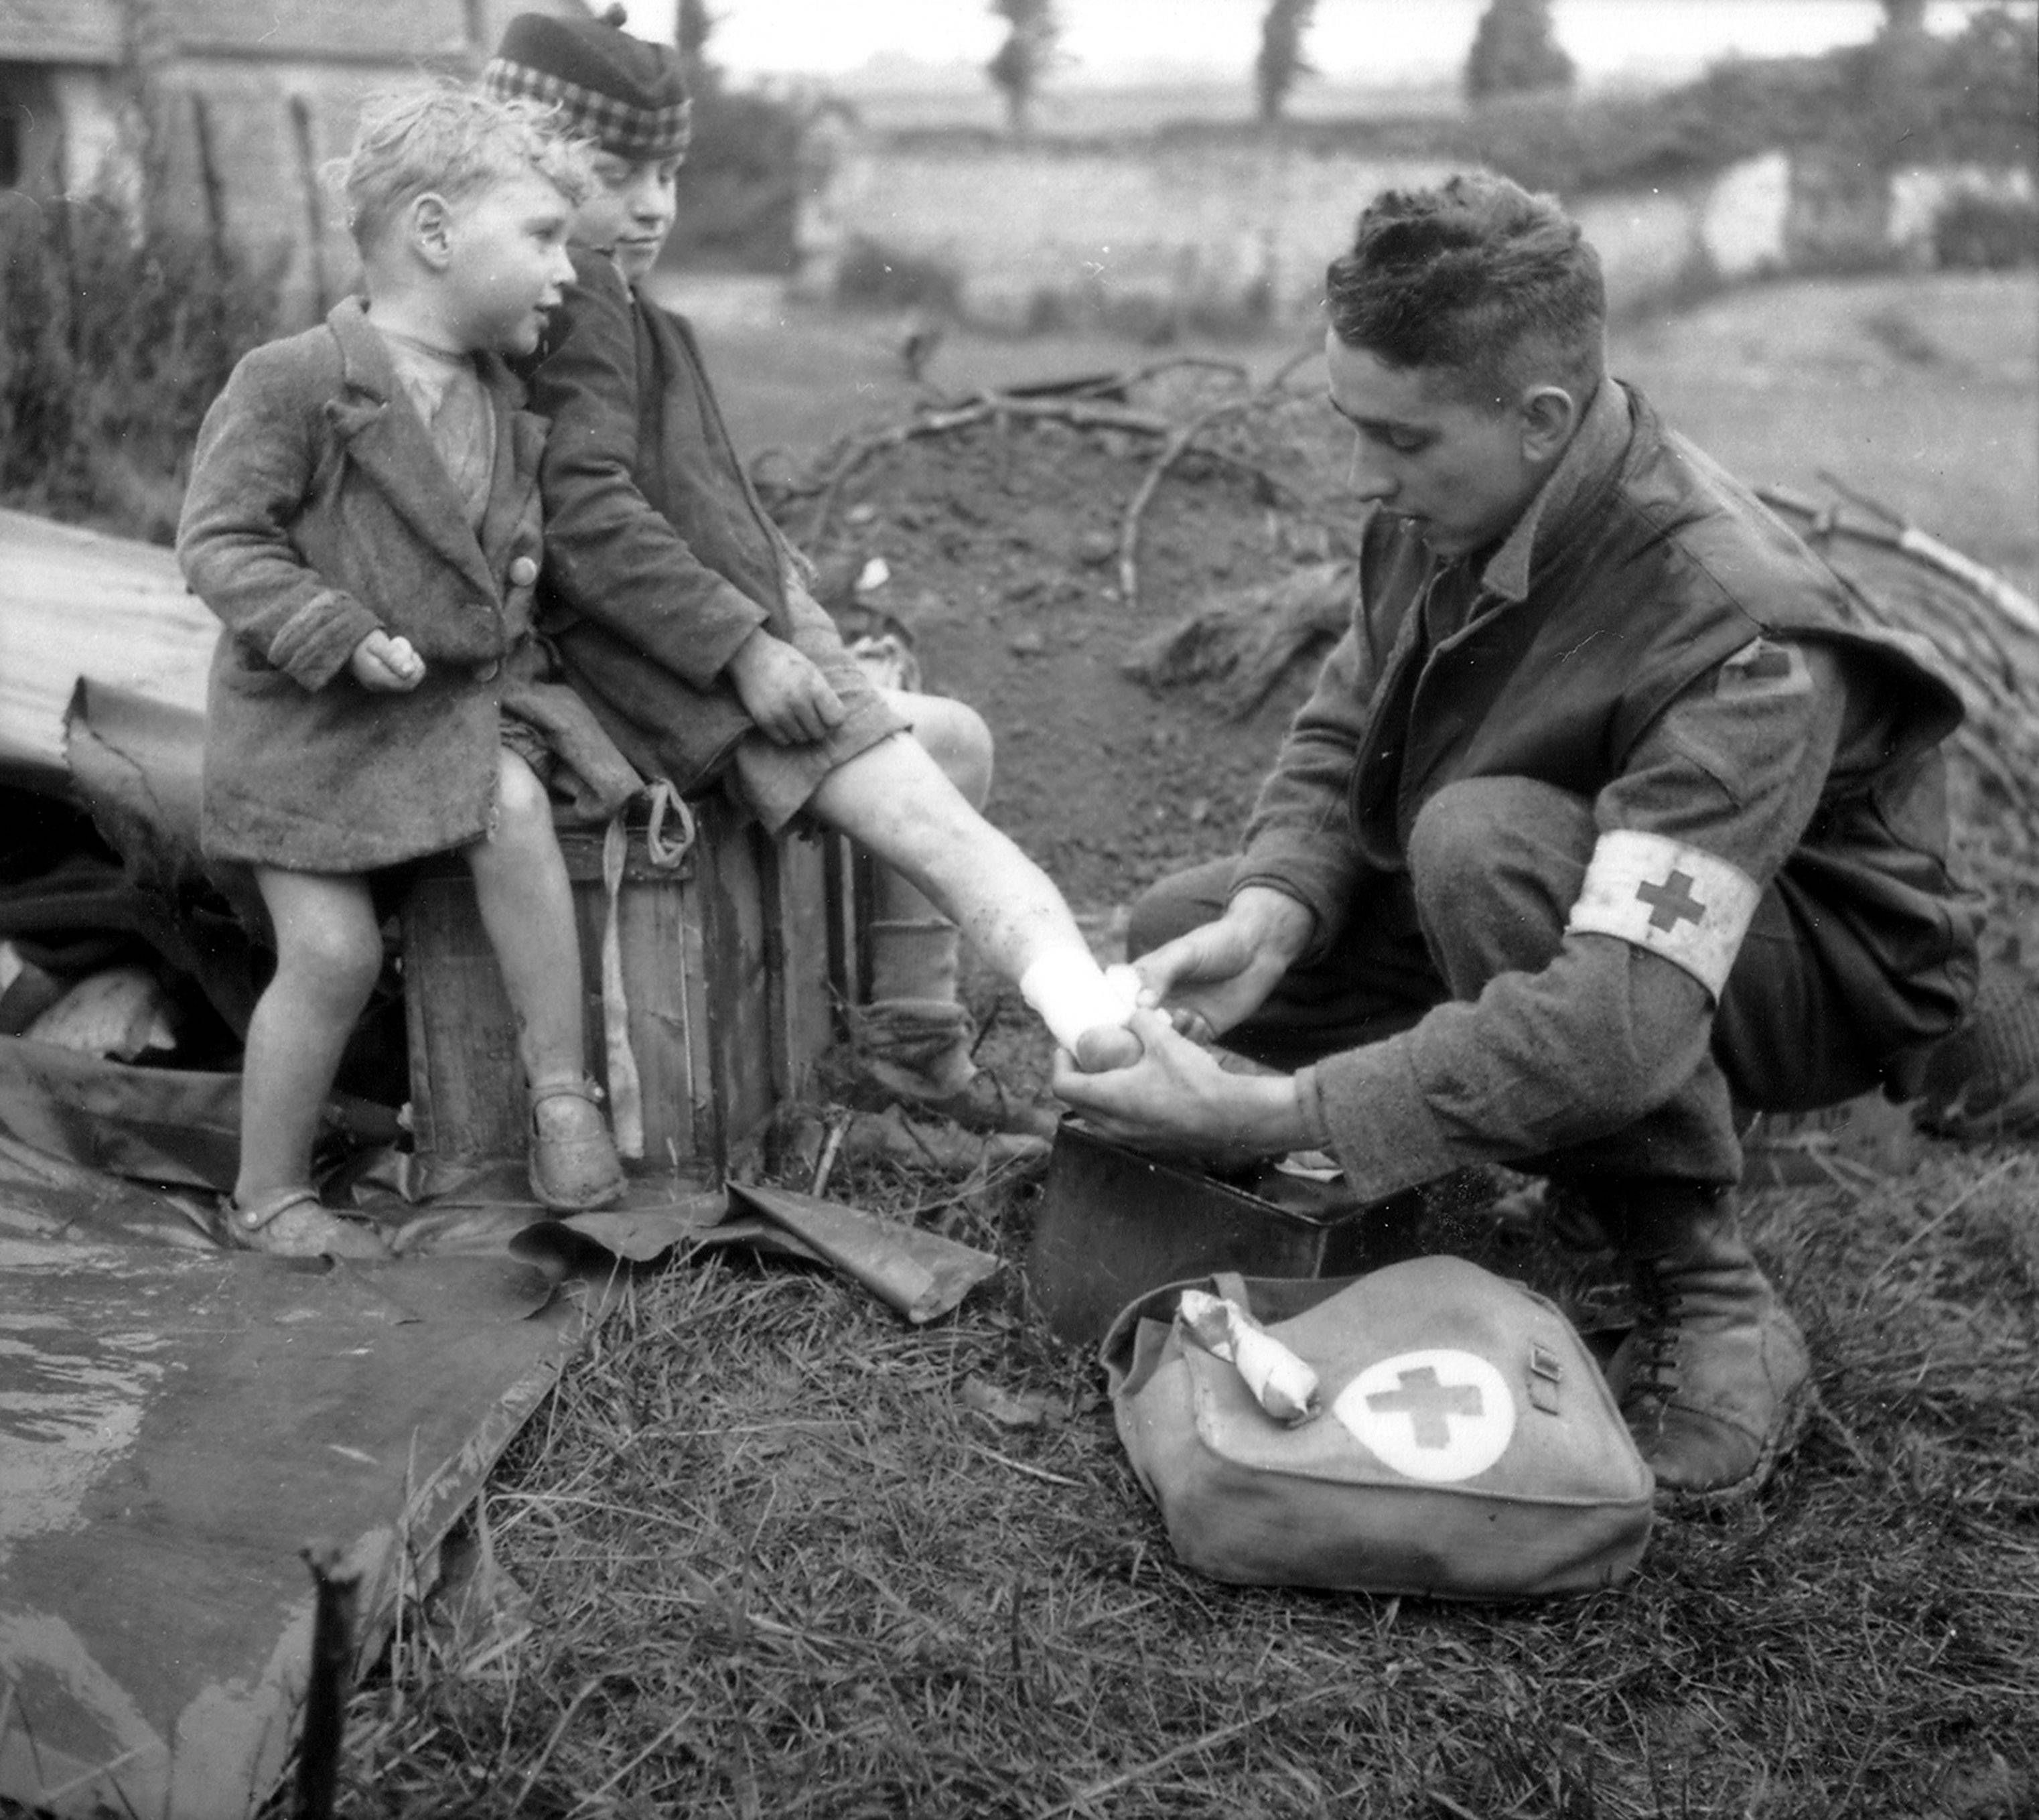 A Royal Canadian Army Medic bandages the burnt leg of a